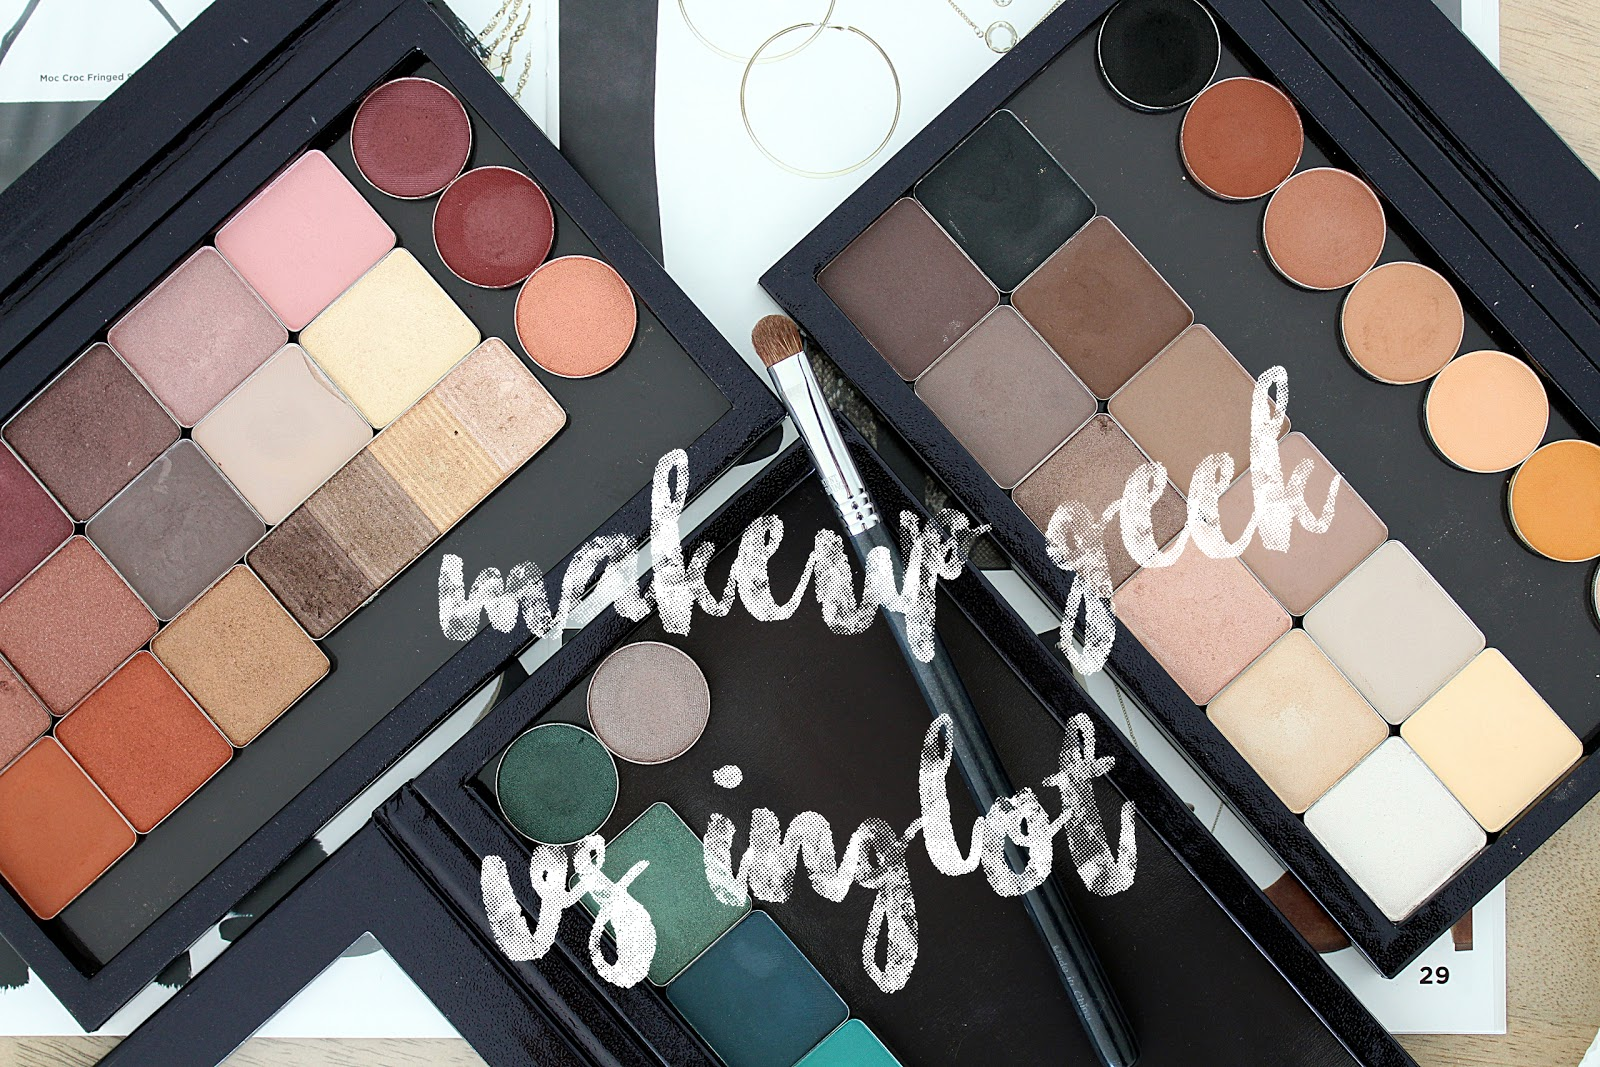 Makeup Geek Vs Inglot Eye Shadows Swatches and Review